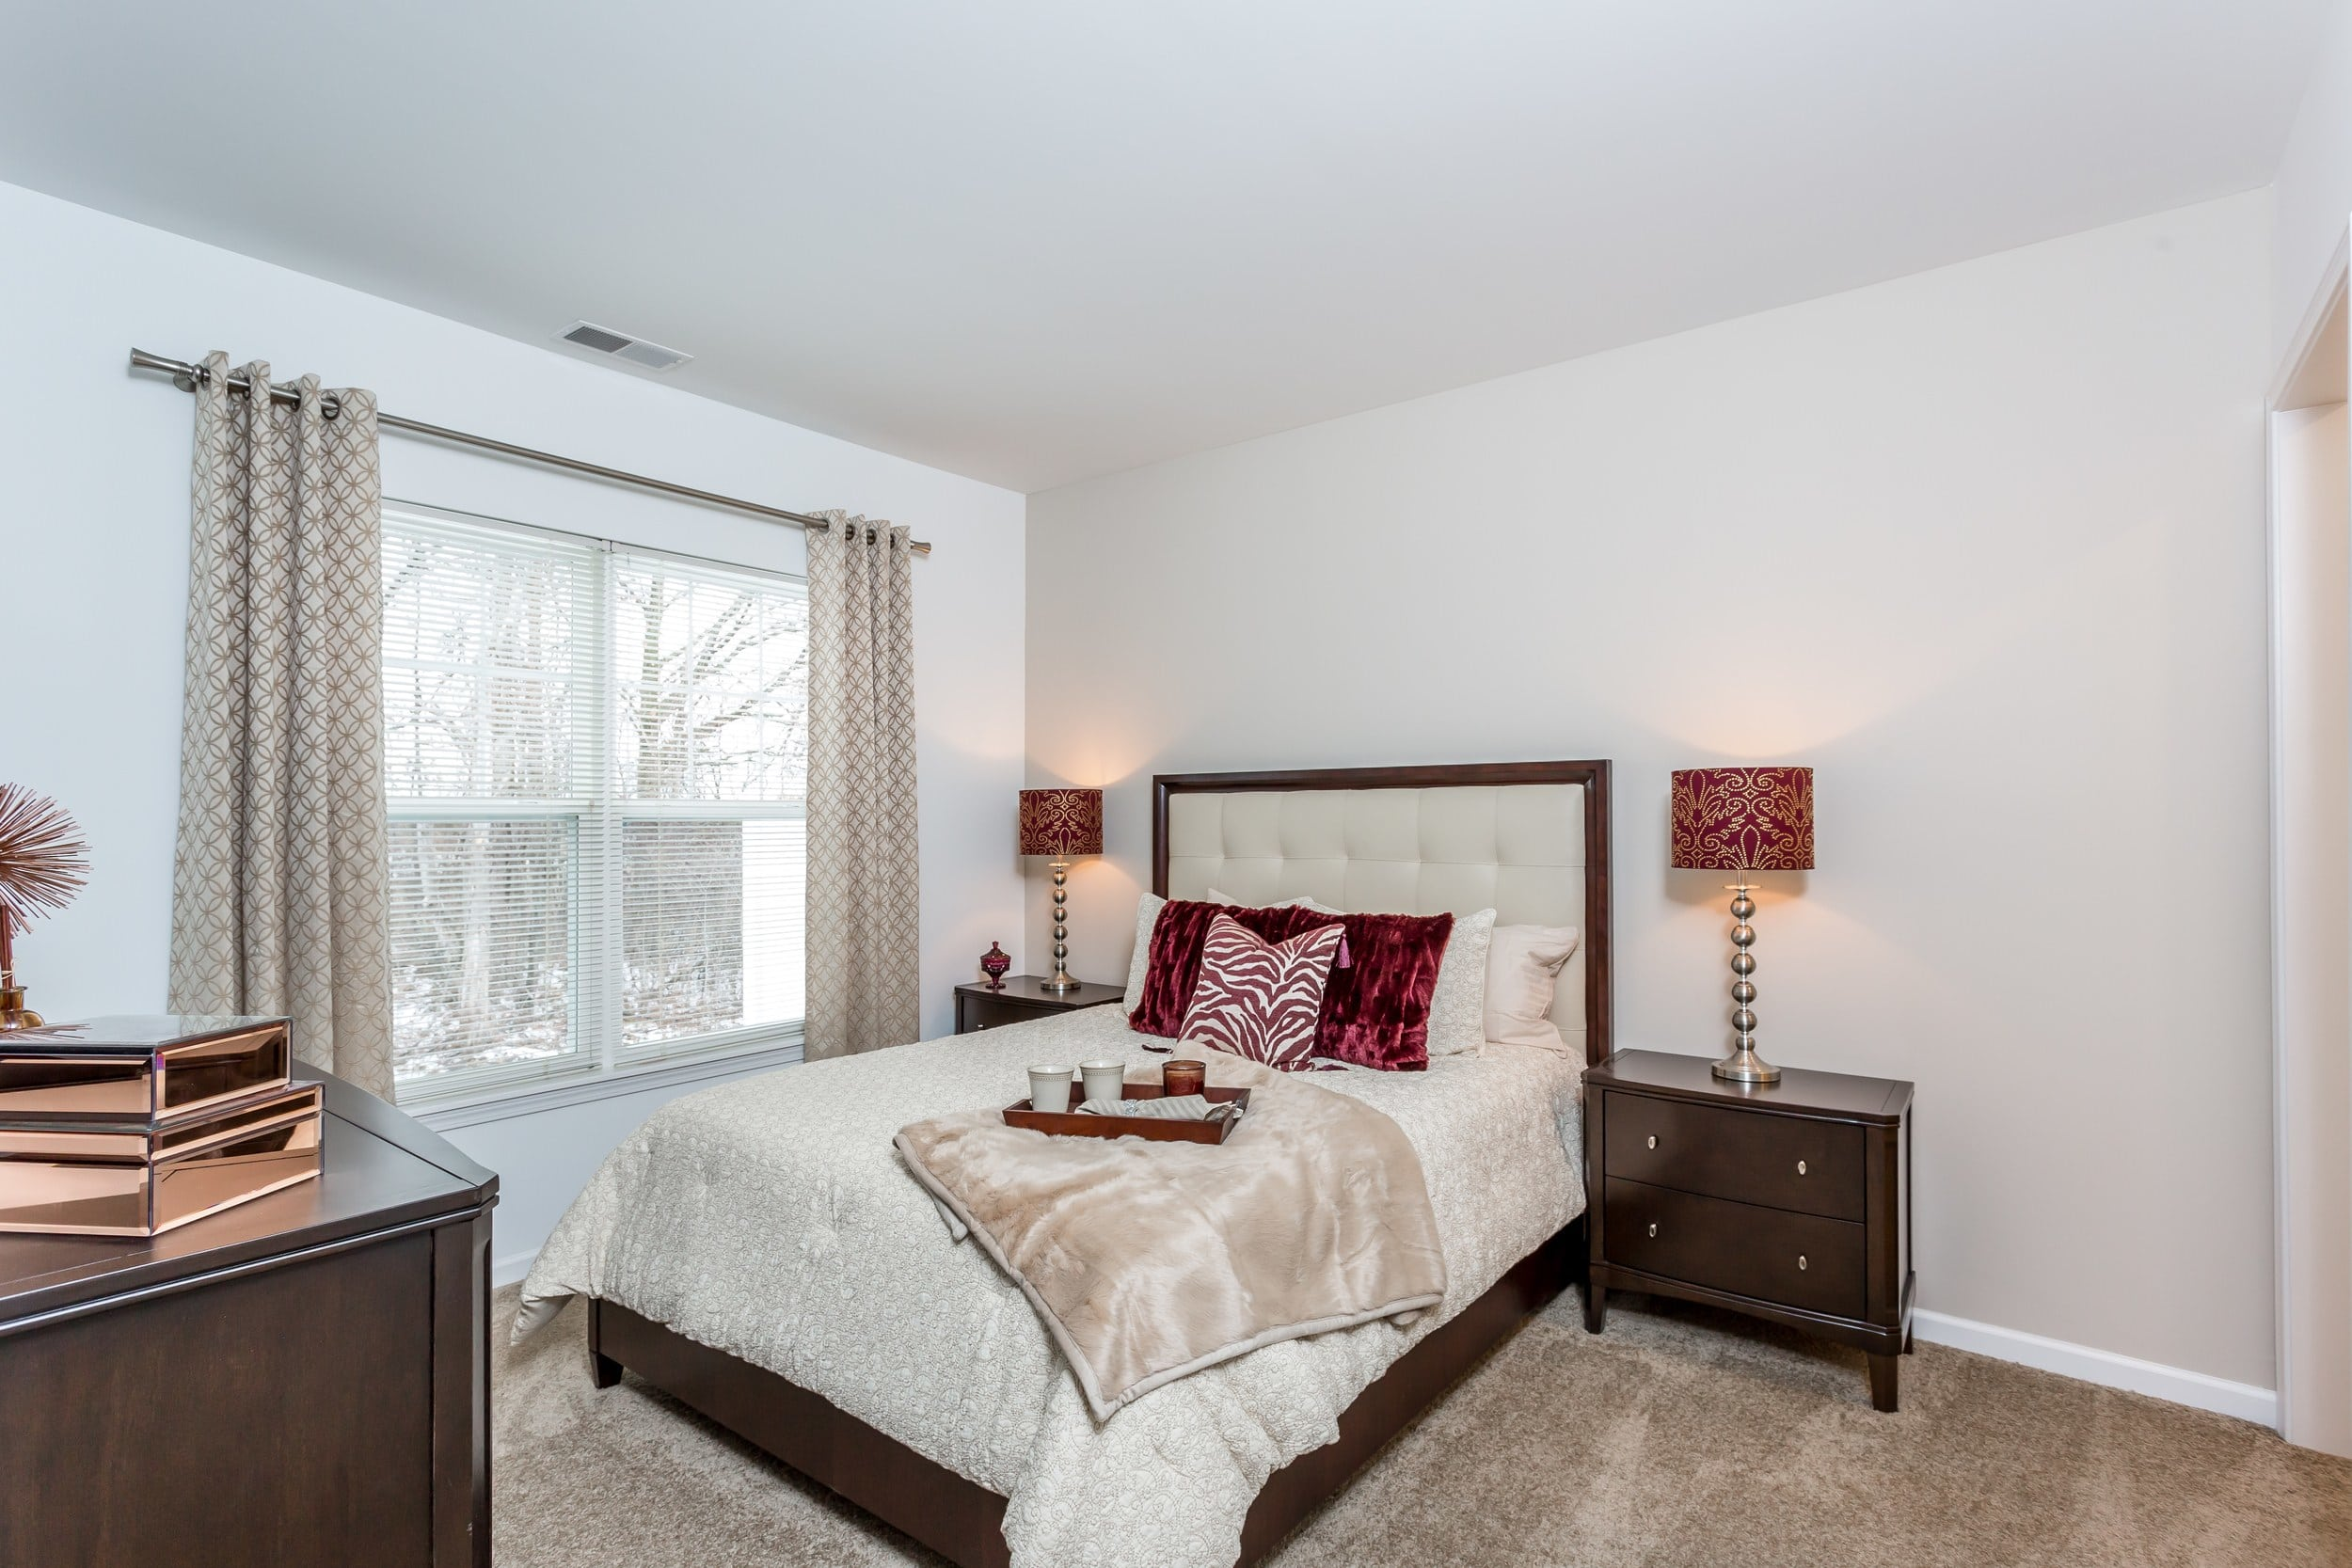 Comfortable bedroom in our Canandaigua, NY apartments